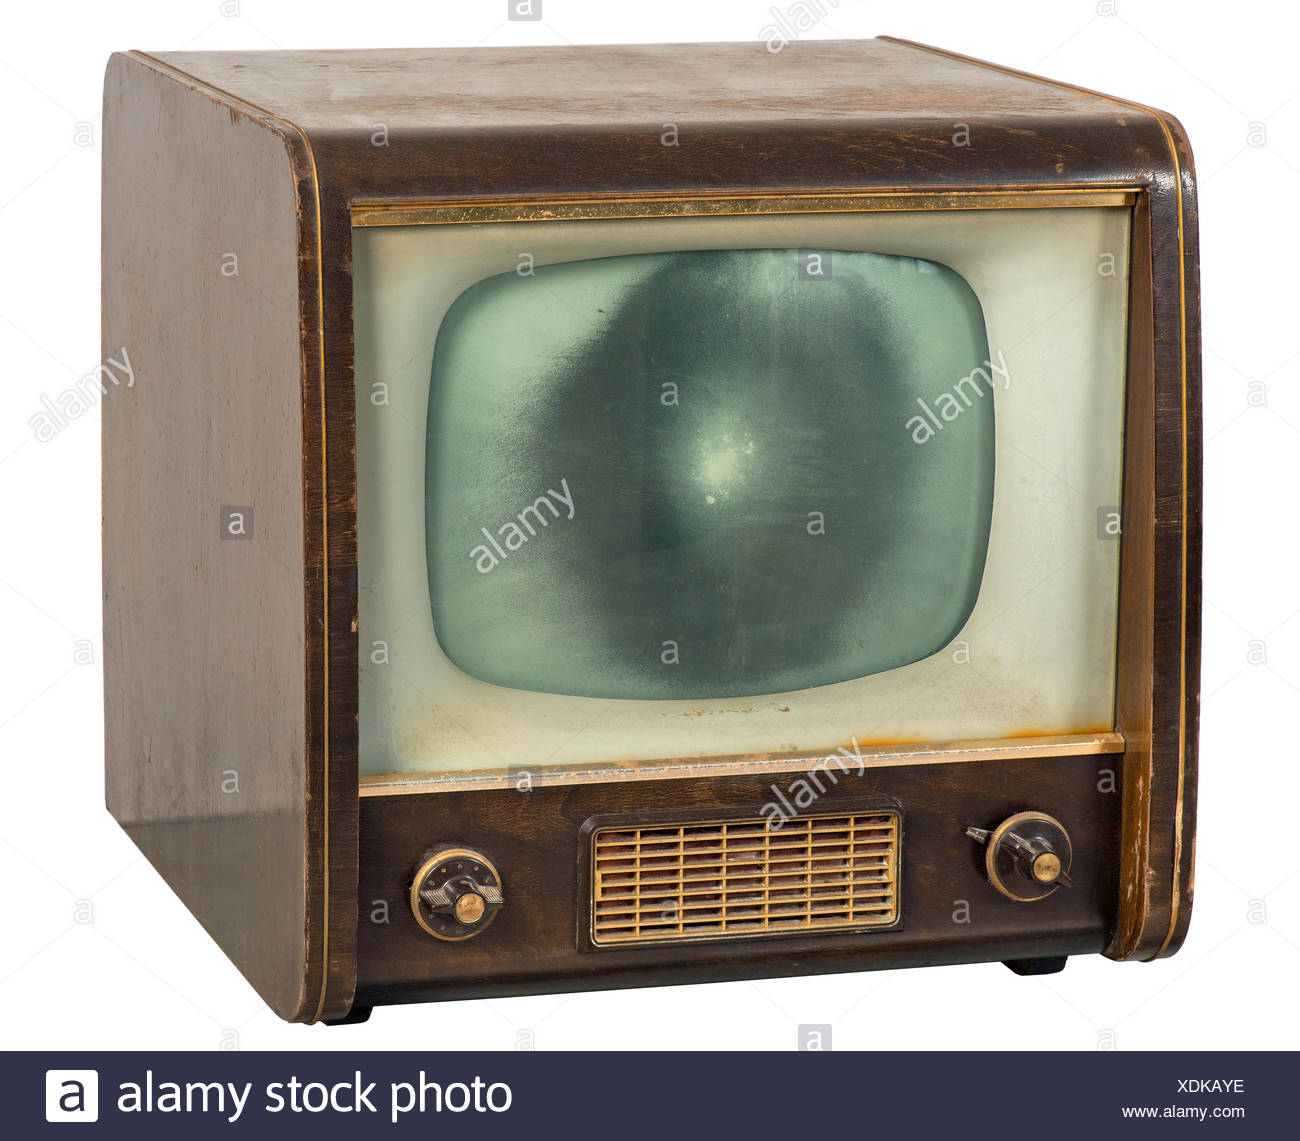 broadcast, television, television set Grundig 350, television set, 43 centimeter screen size, screen size damaged, implode, early German postwar device, original price at that time 895 DM, Germany, 1954, Additional-Rights-Clearences-NA - Stock Image